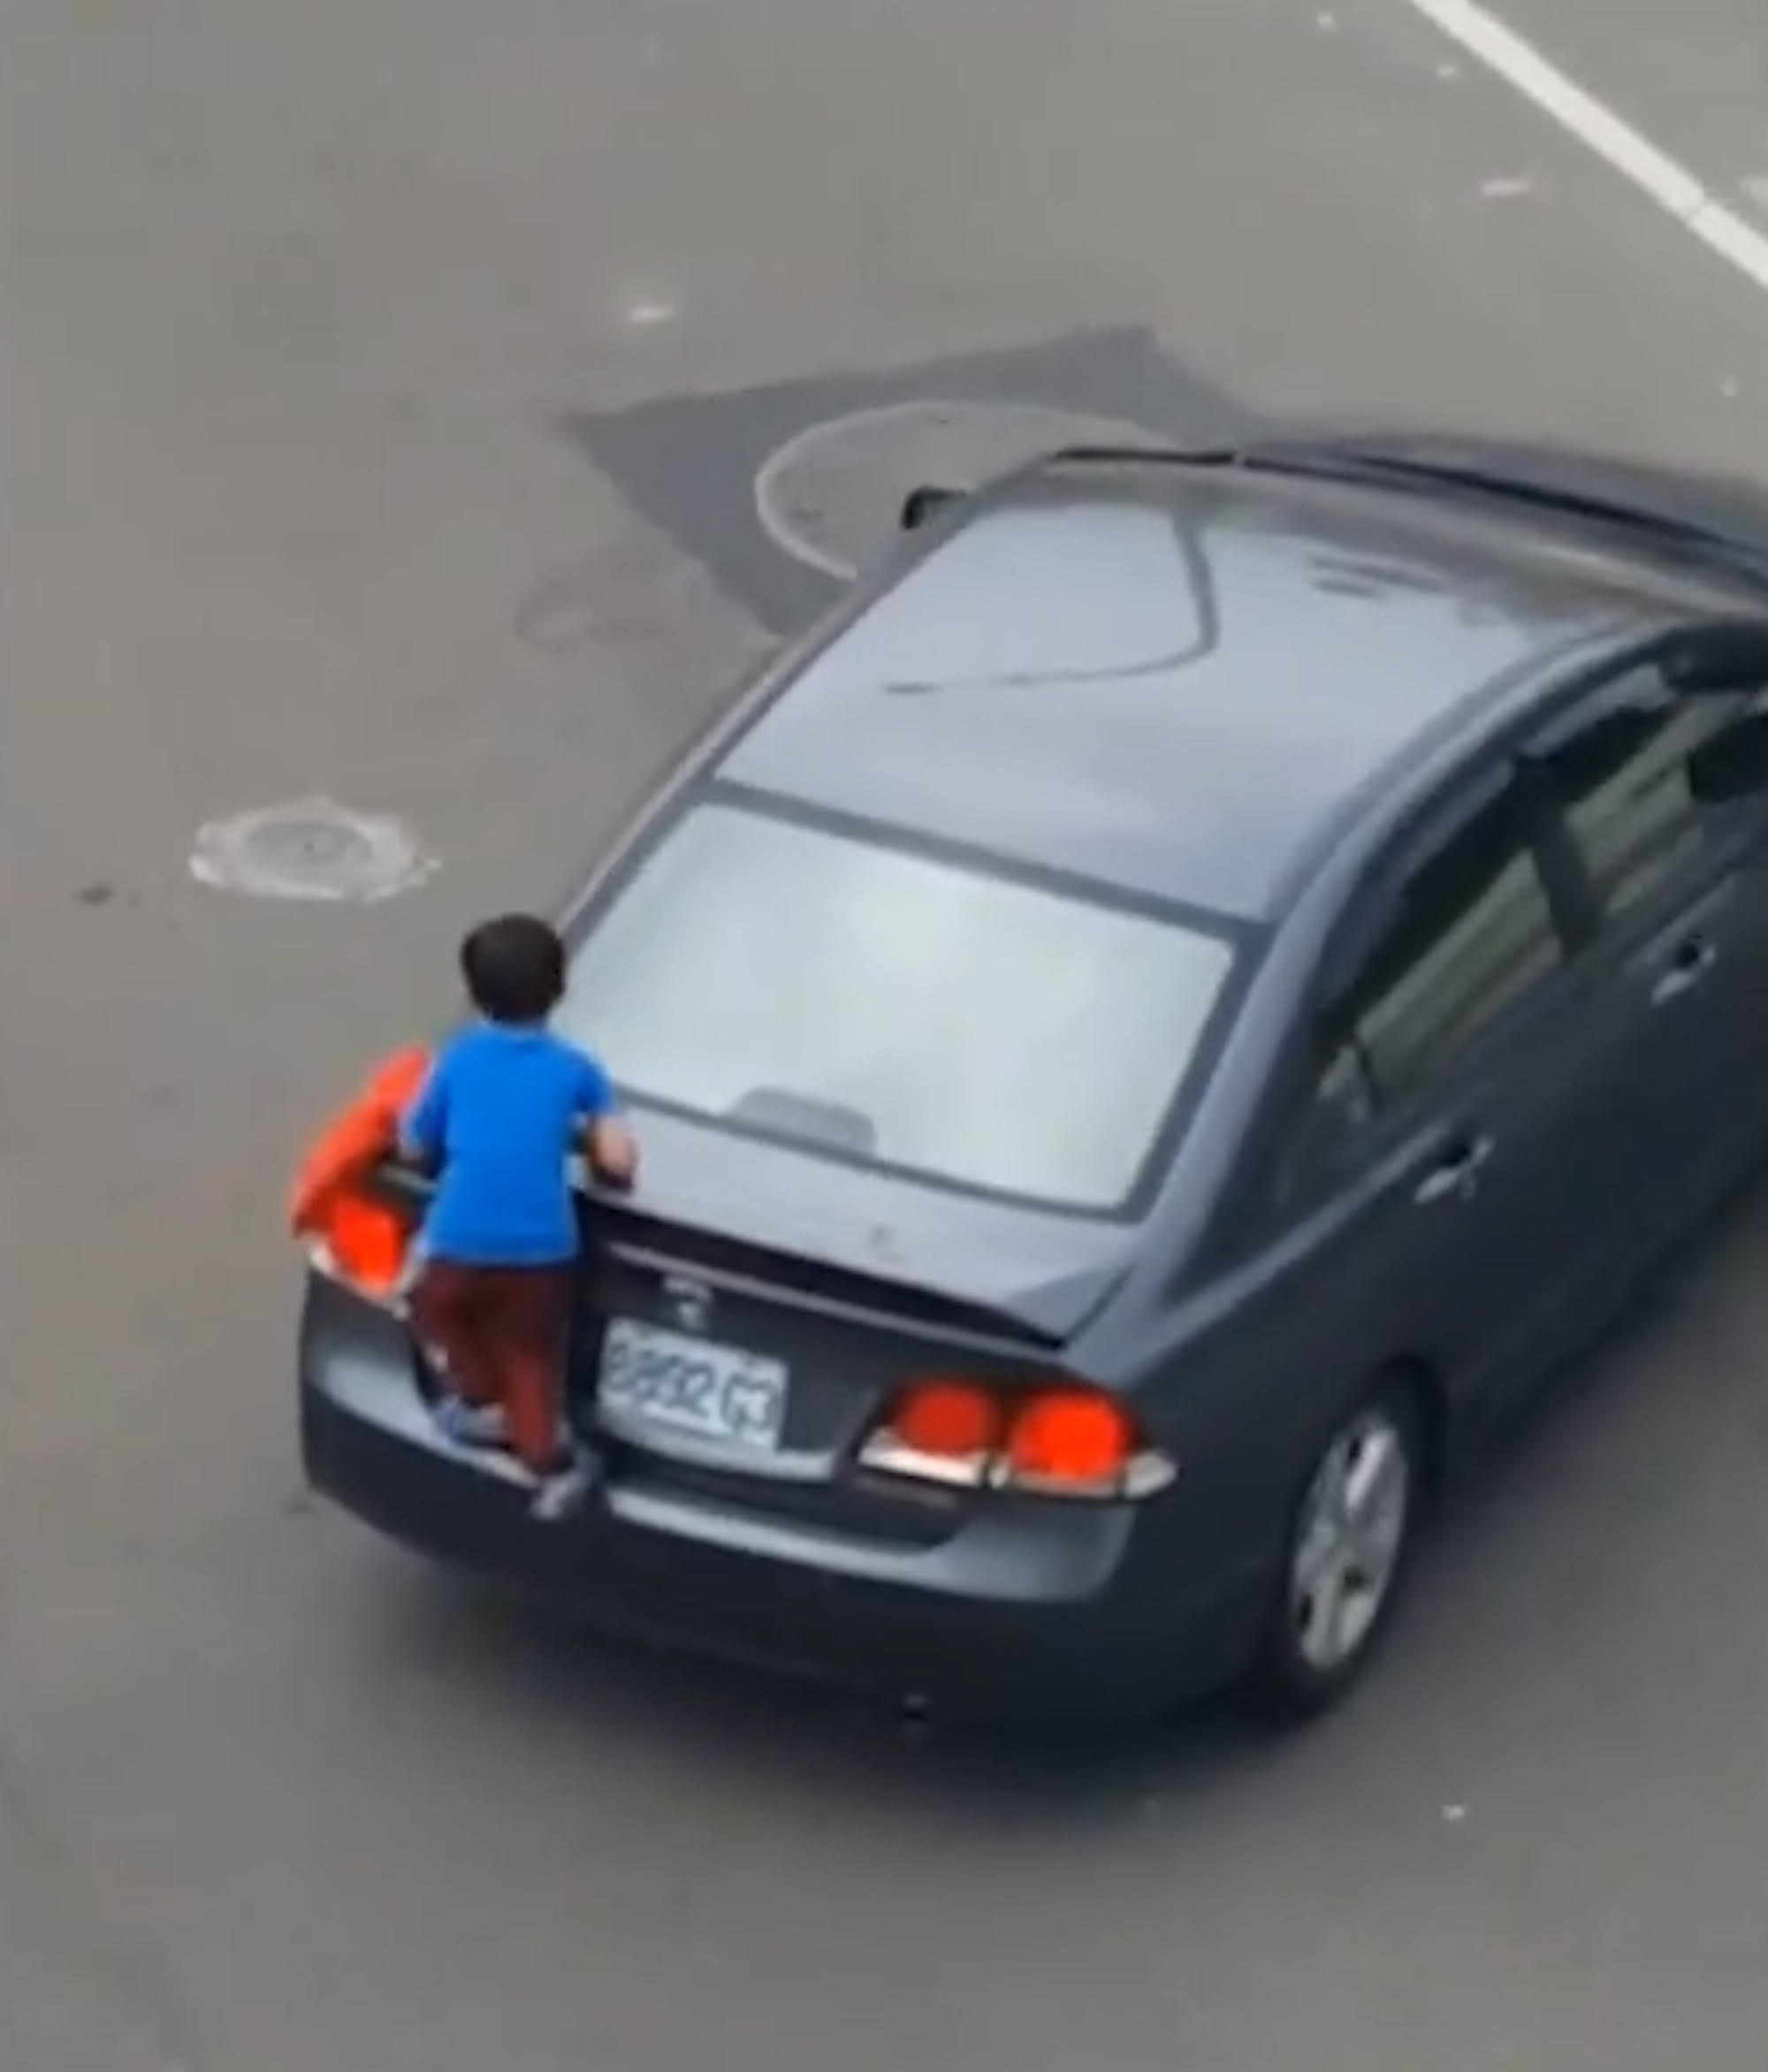 Boy Clings To Mothers Car As She Drives Off As Punishment unnamed 2